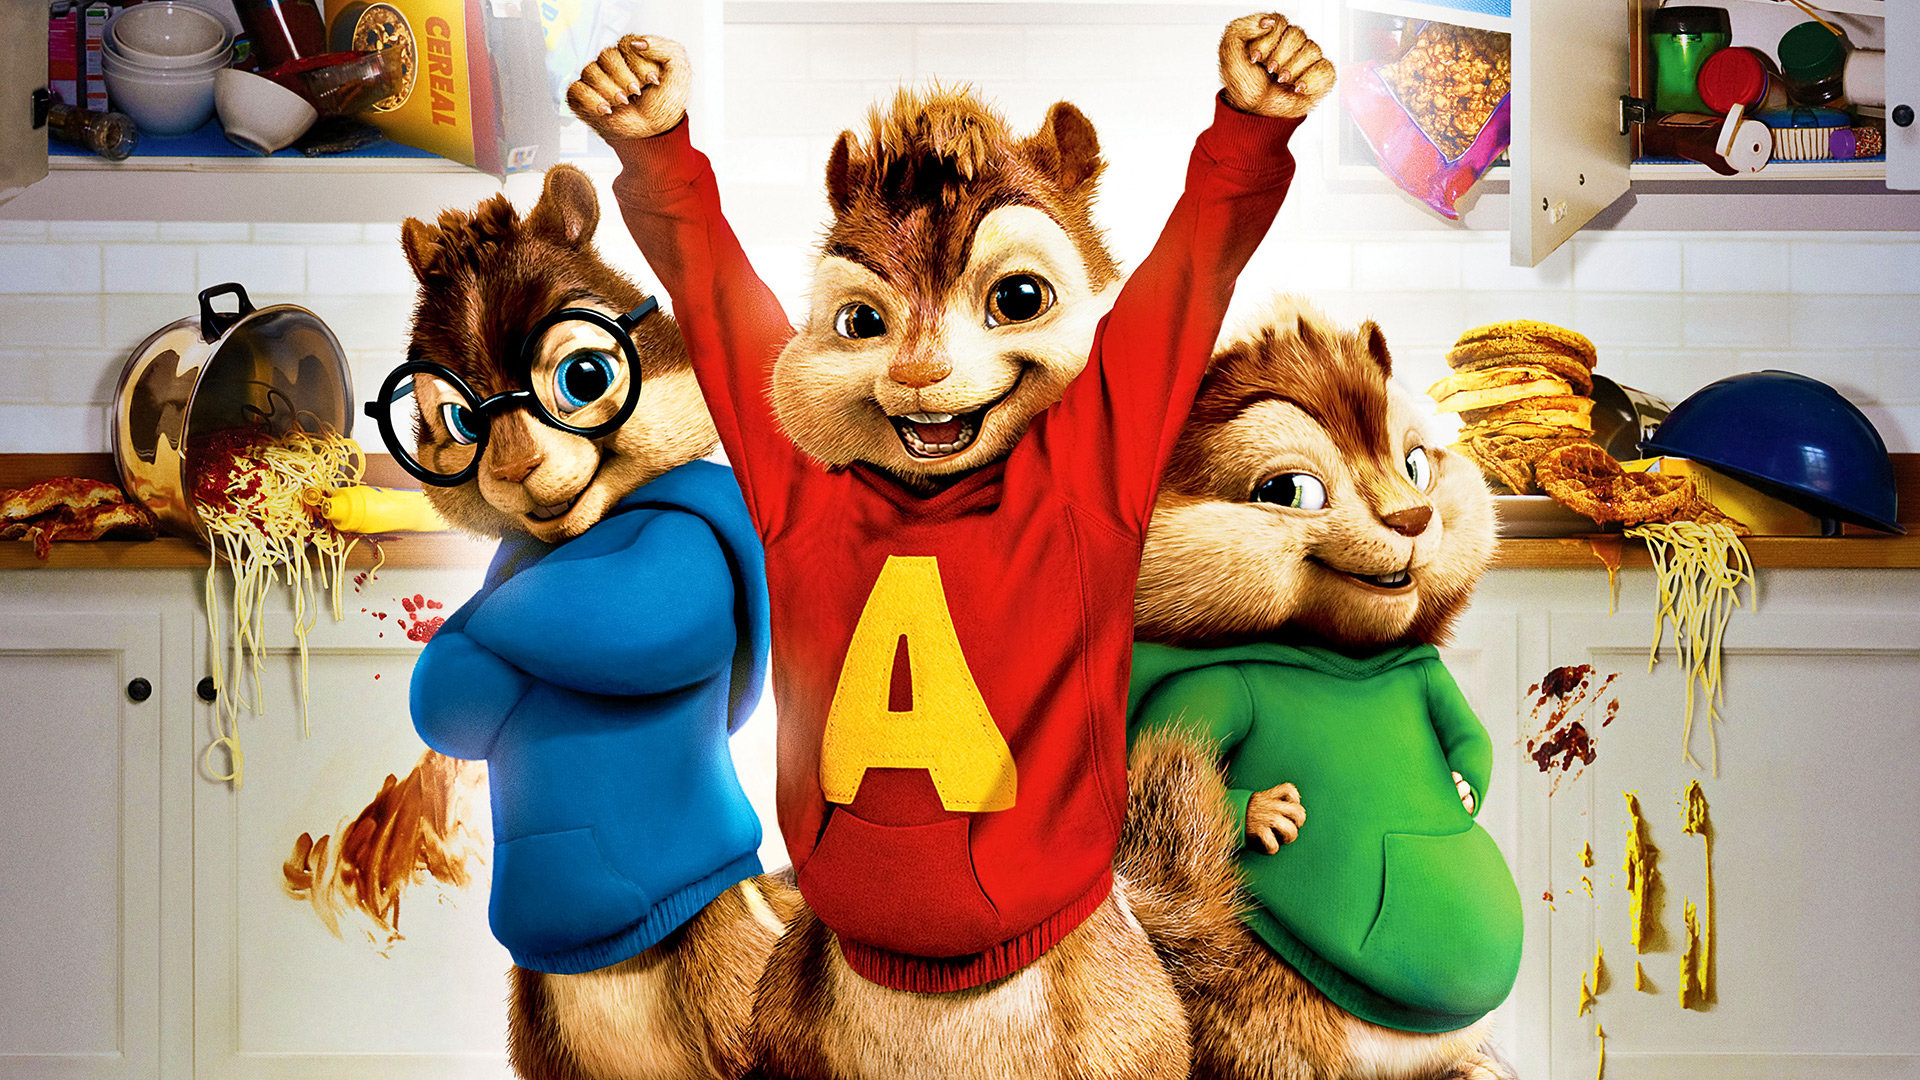 Alvin And The Chipmunks Wallpapers 1920x1080 Full Hd 1080p